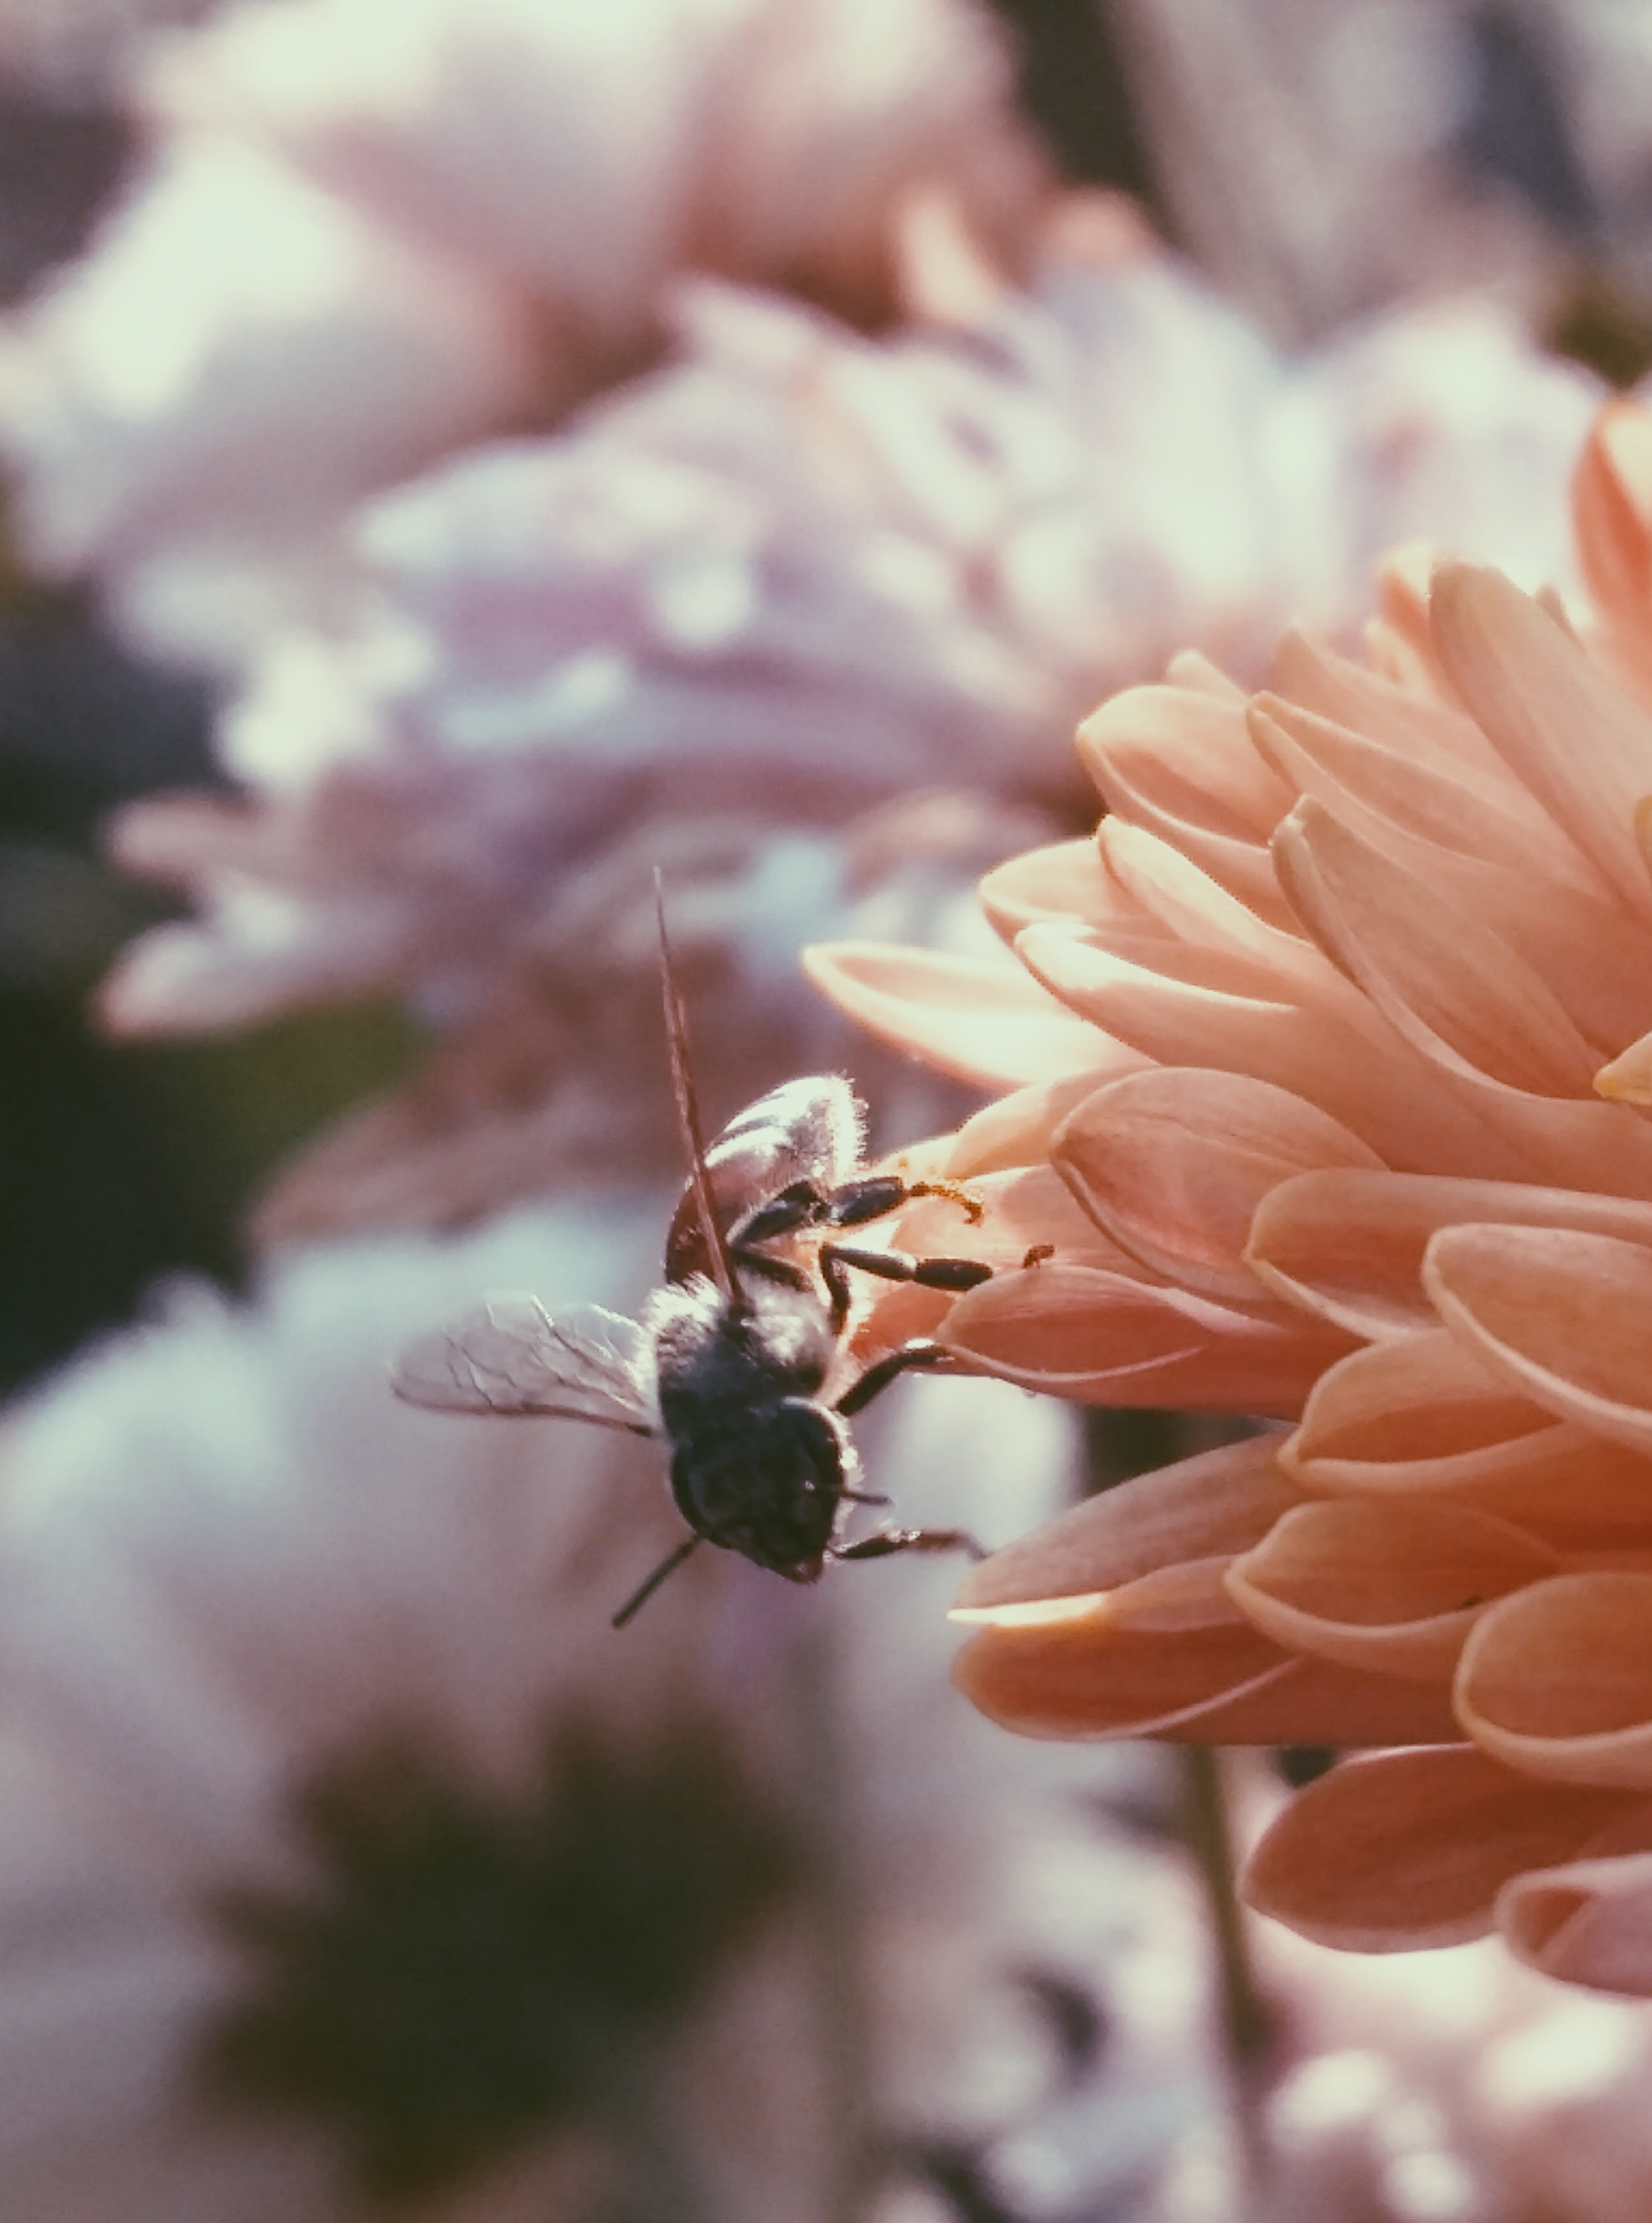 Selective Focus Photography of Bee on Flower, Animal, Flower, Pollination, Pollen, HQ Photo